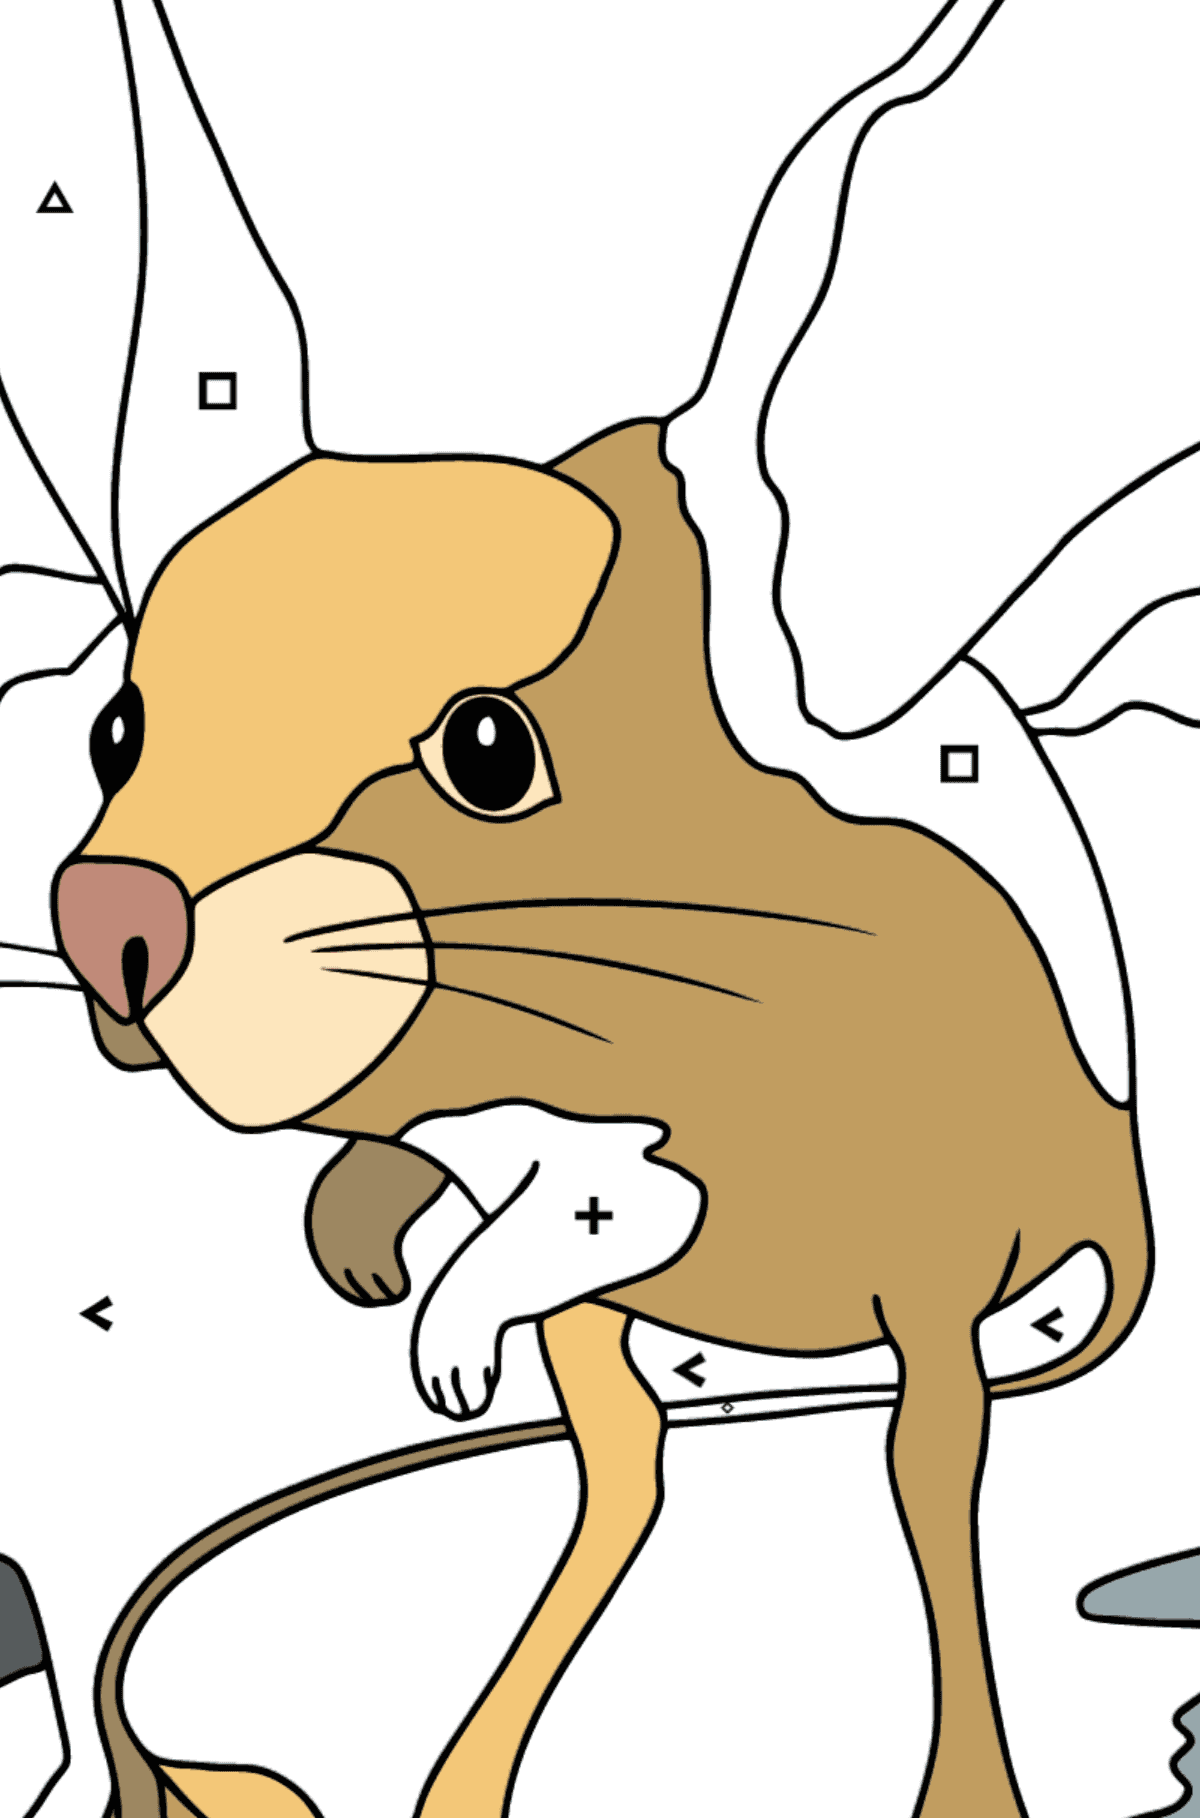 A Jerboa is Inspecting the Area Coloring Page - Coloring by Symbols for Kids